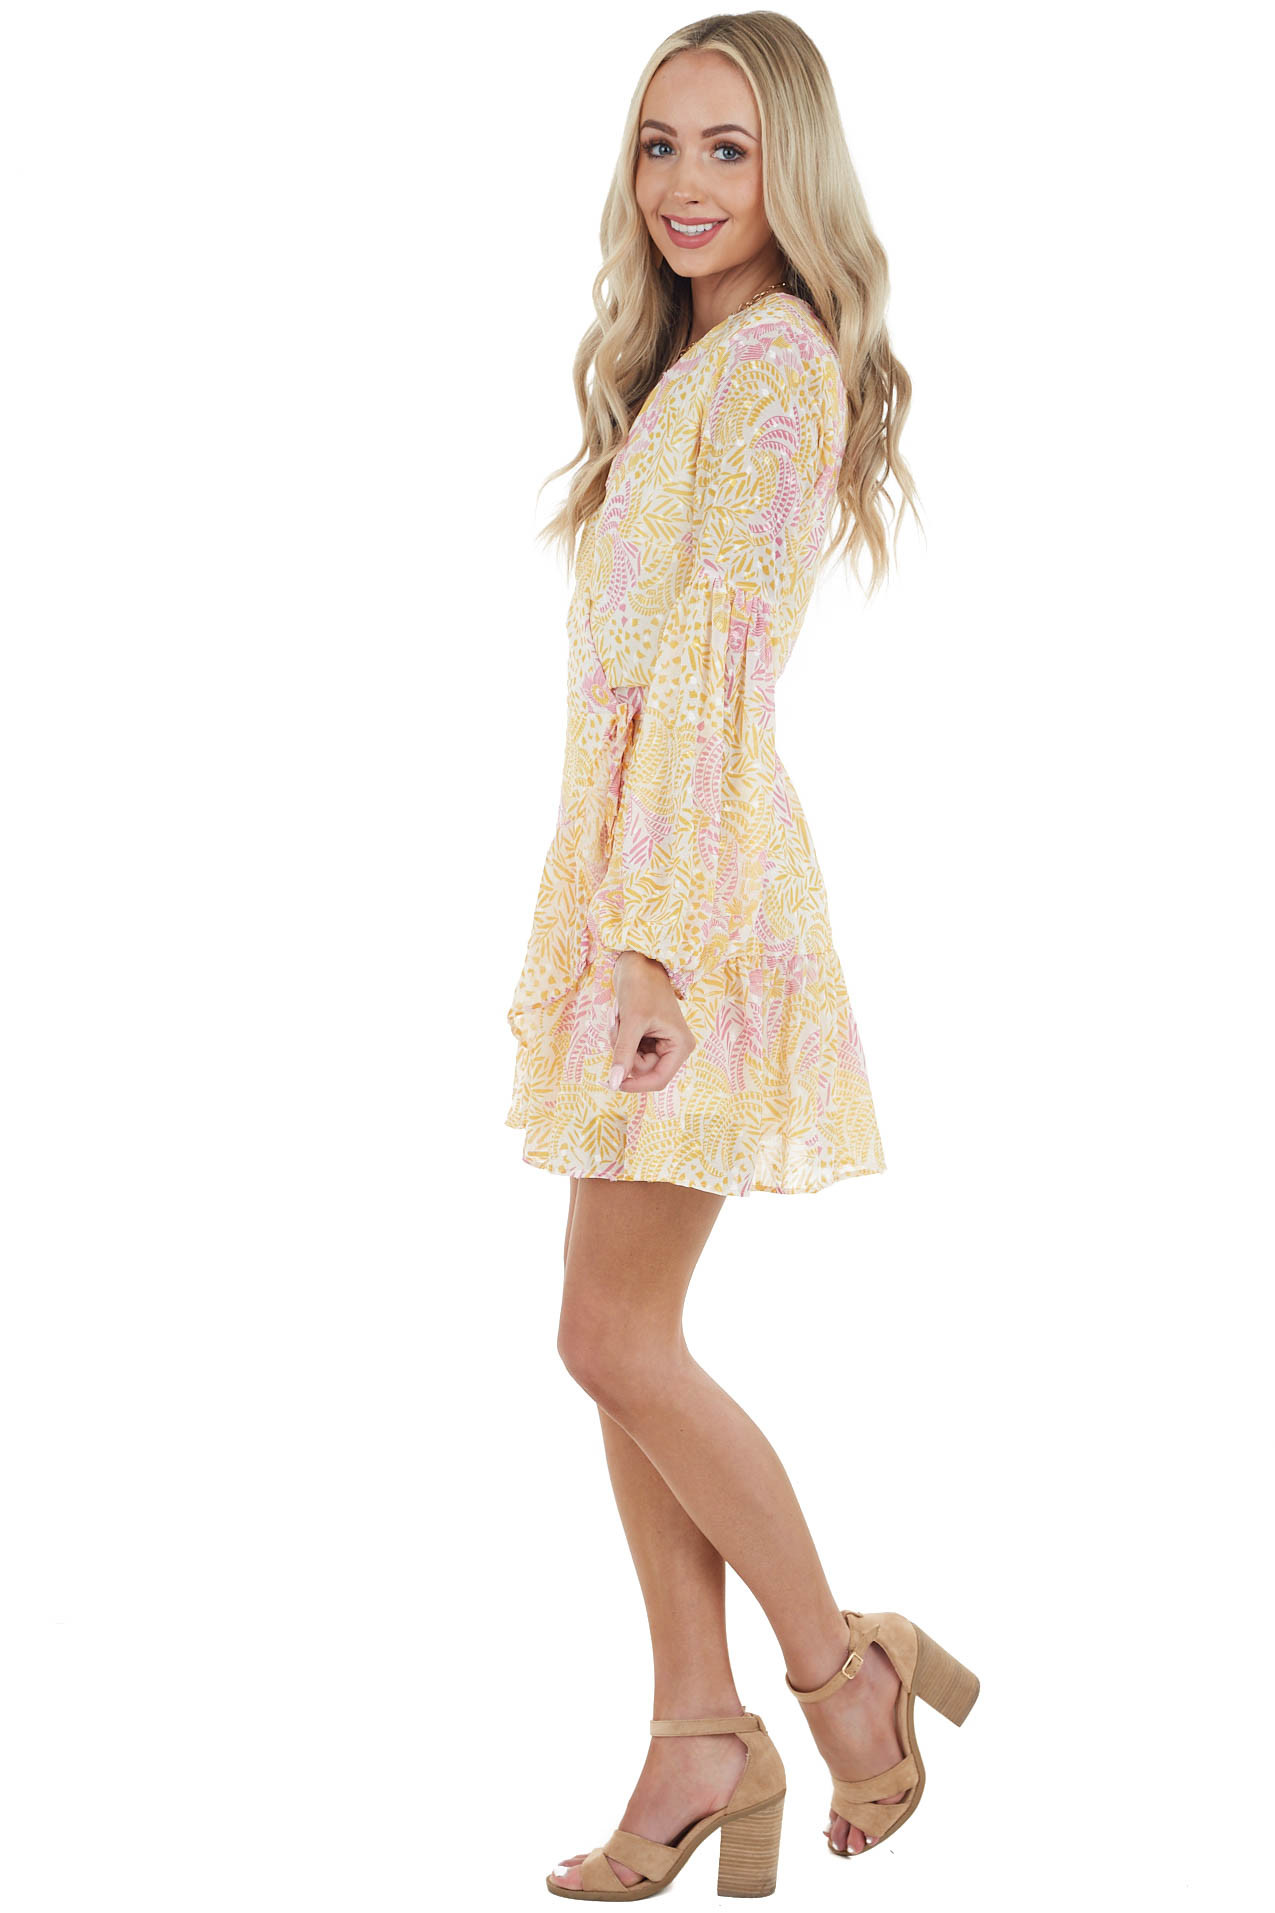 Banana Abstract Floral Print Swiss Dot Surplice Short Dress